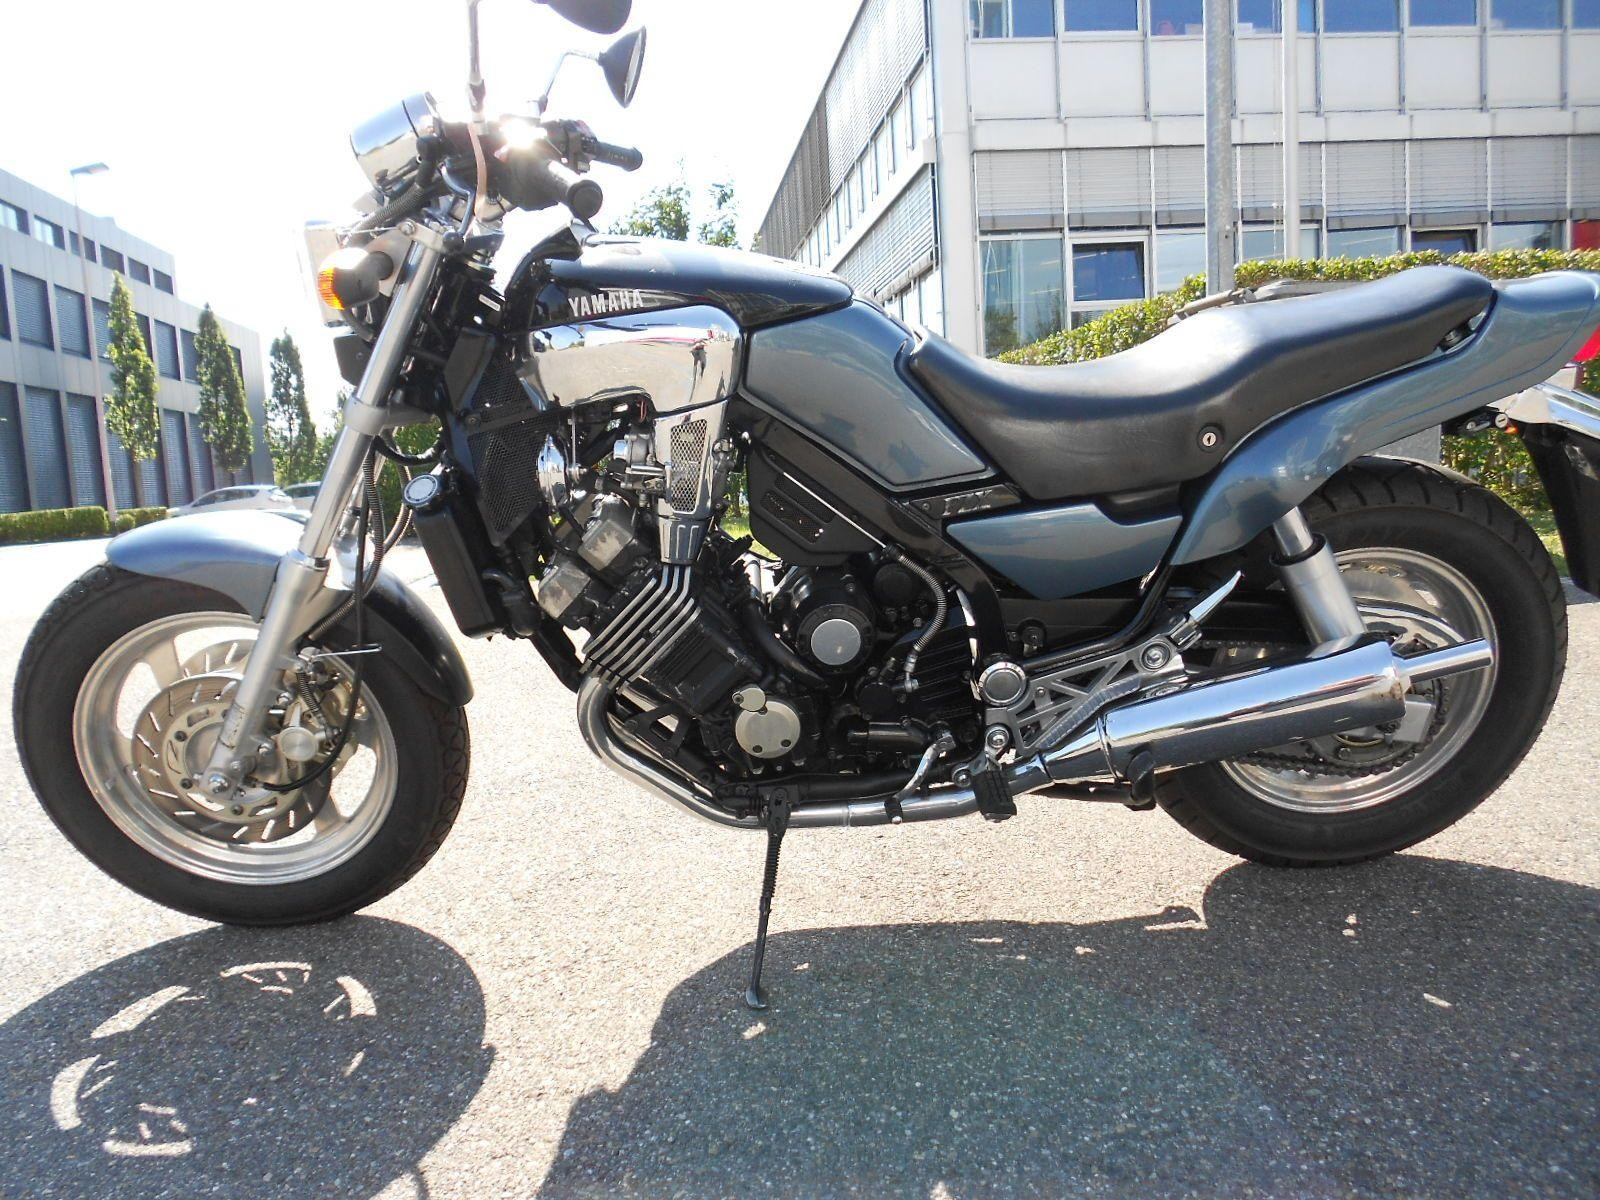 buy motorbike pre owned yamaha fzx 750 fazer hans k ng ag n nikon greifensee id 6236361. Black Bedroom Furniture Sets. Home Design Ideas